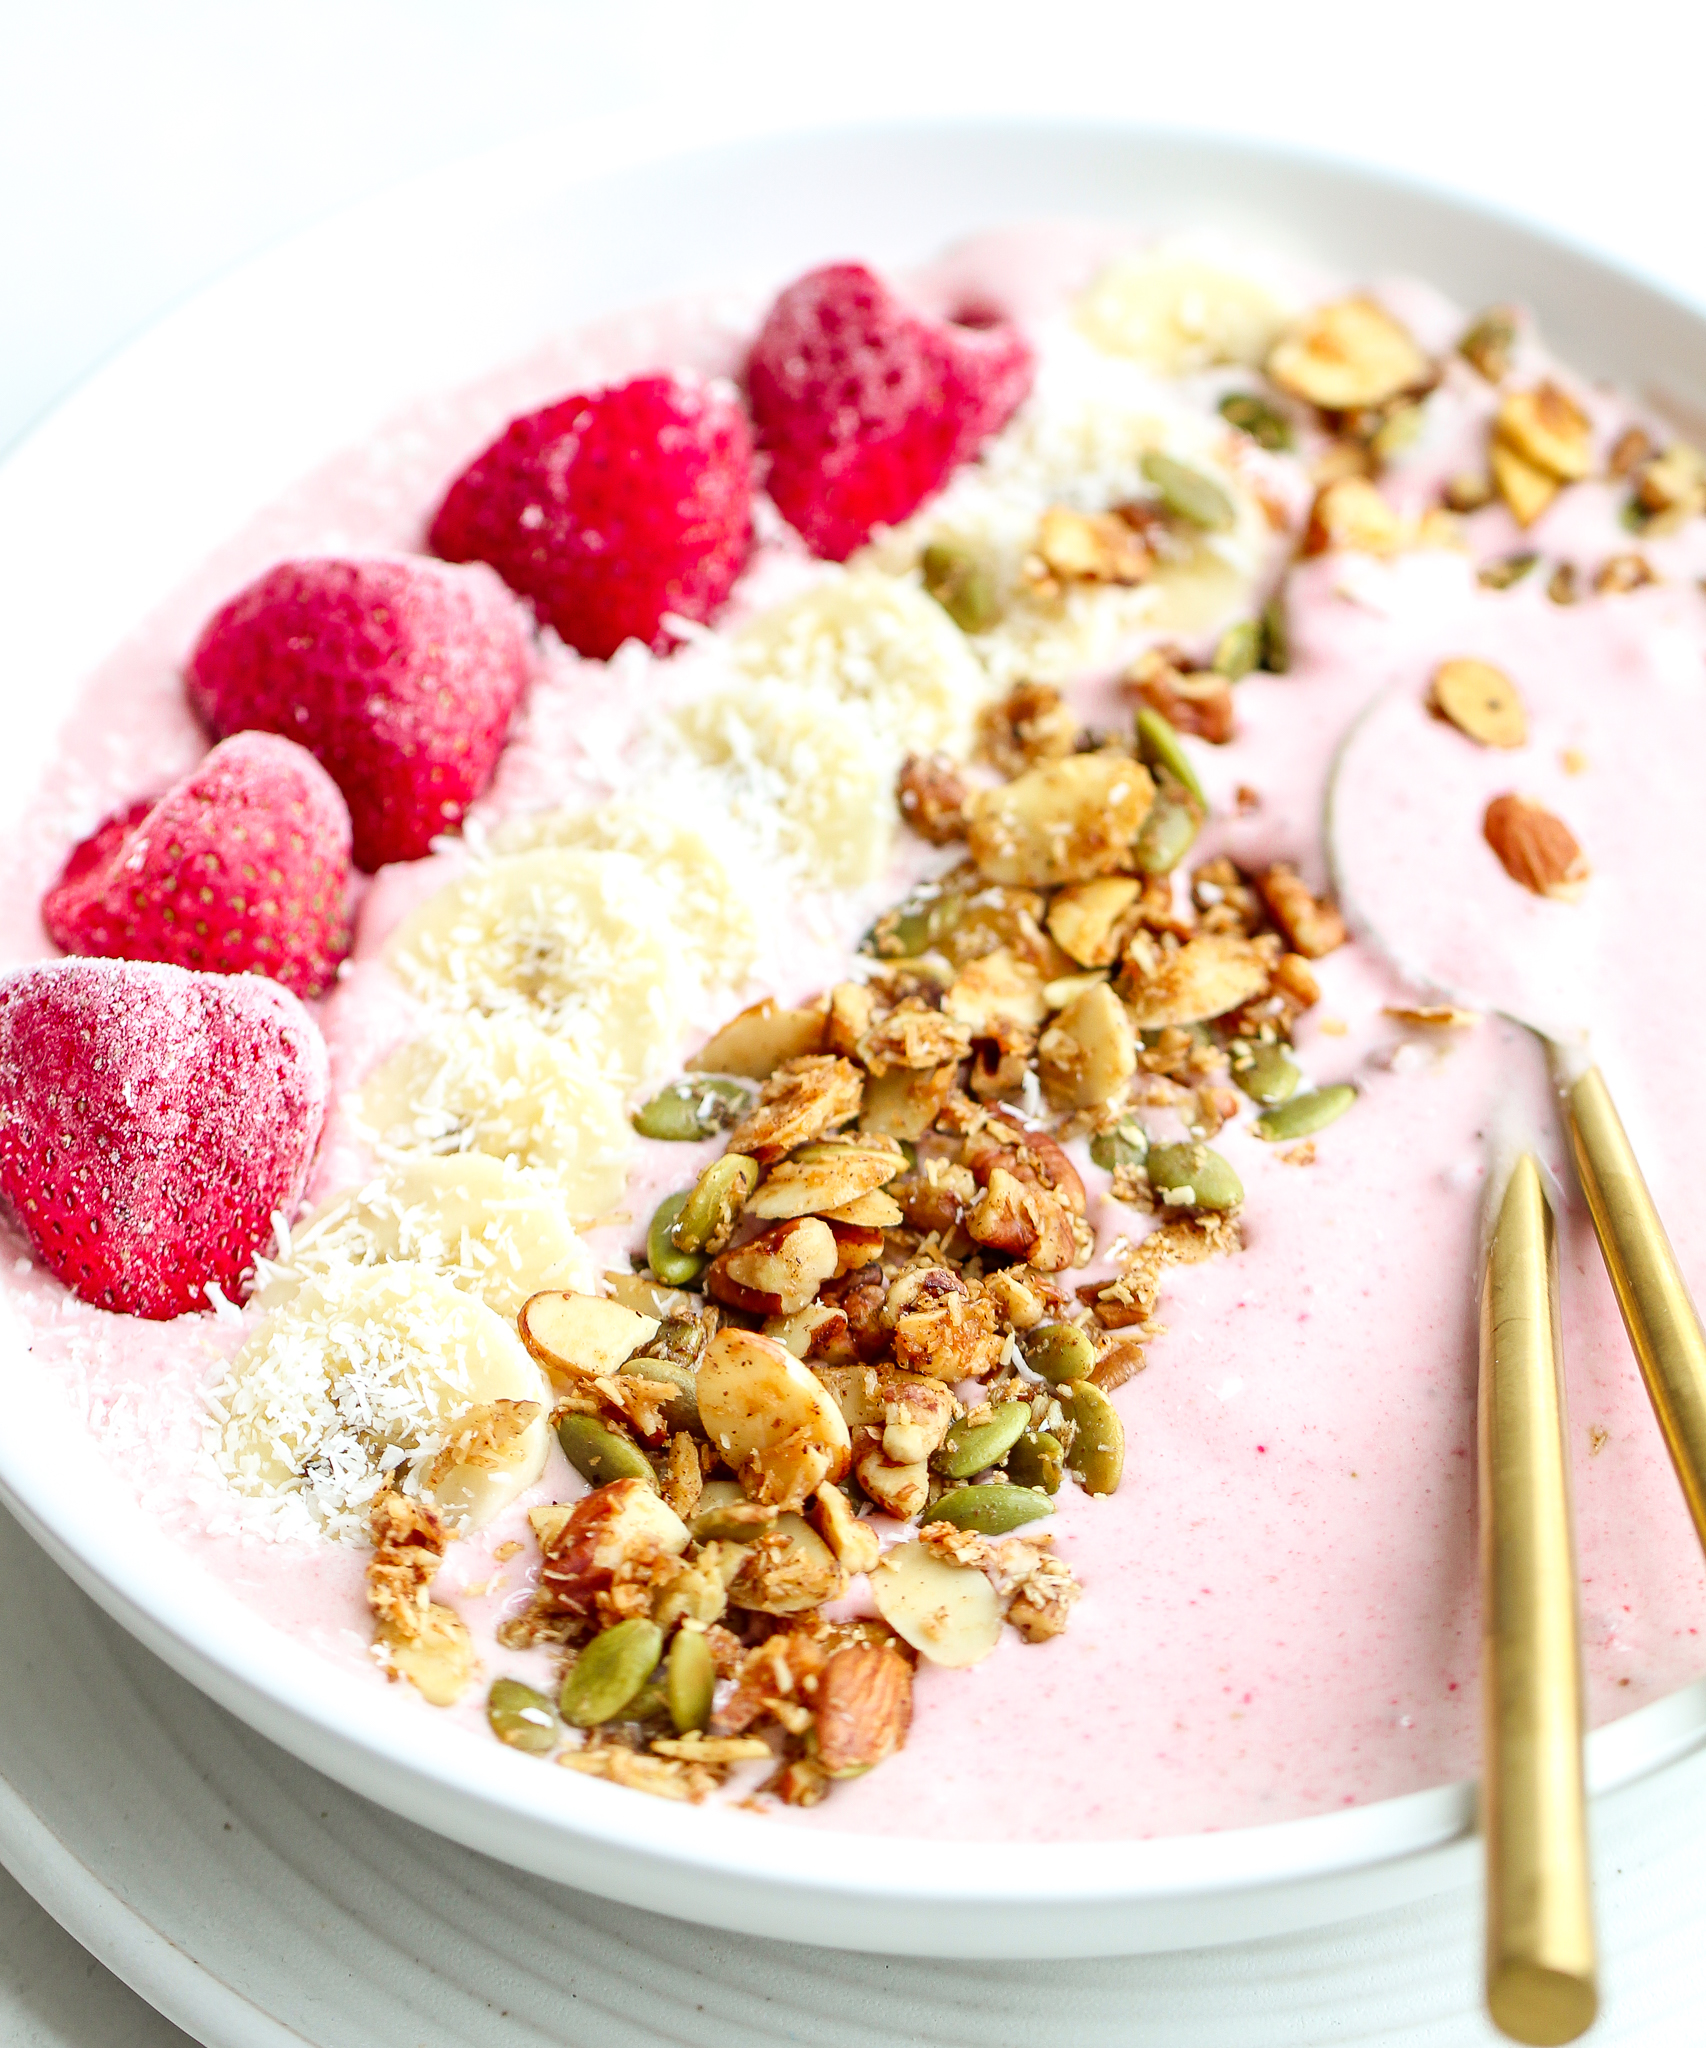 strawberry banana smoothie in a white bowl, topped with strawberries, sliced bananas, homemade granola and shredded coconut. There are matte golden spoons in the smoothie bowl